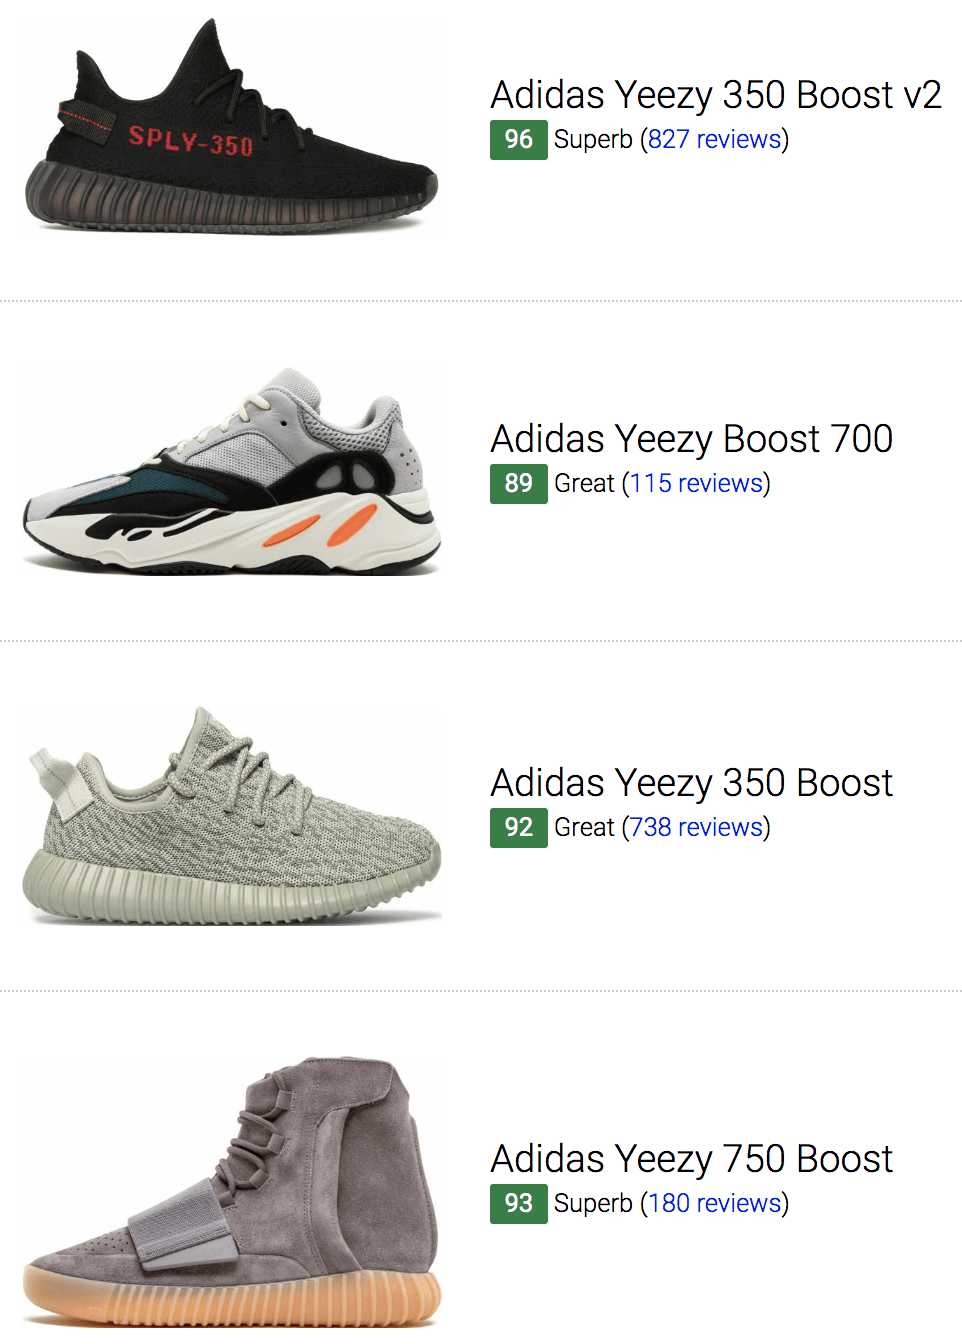 best adidas yeezy sneakers